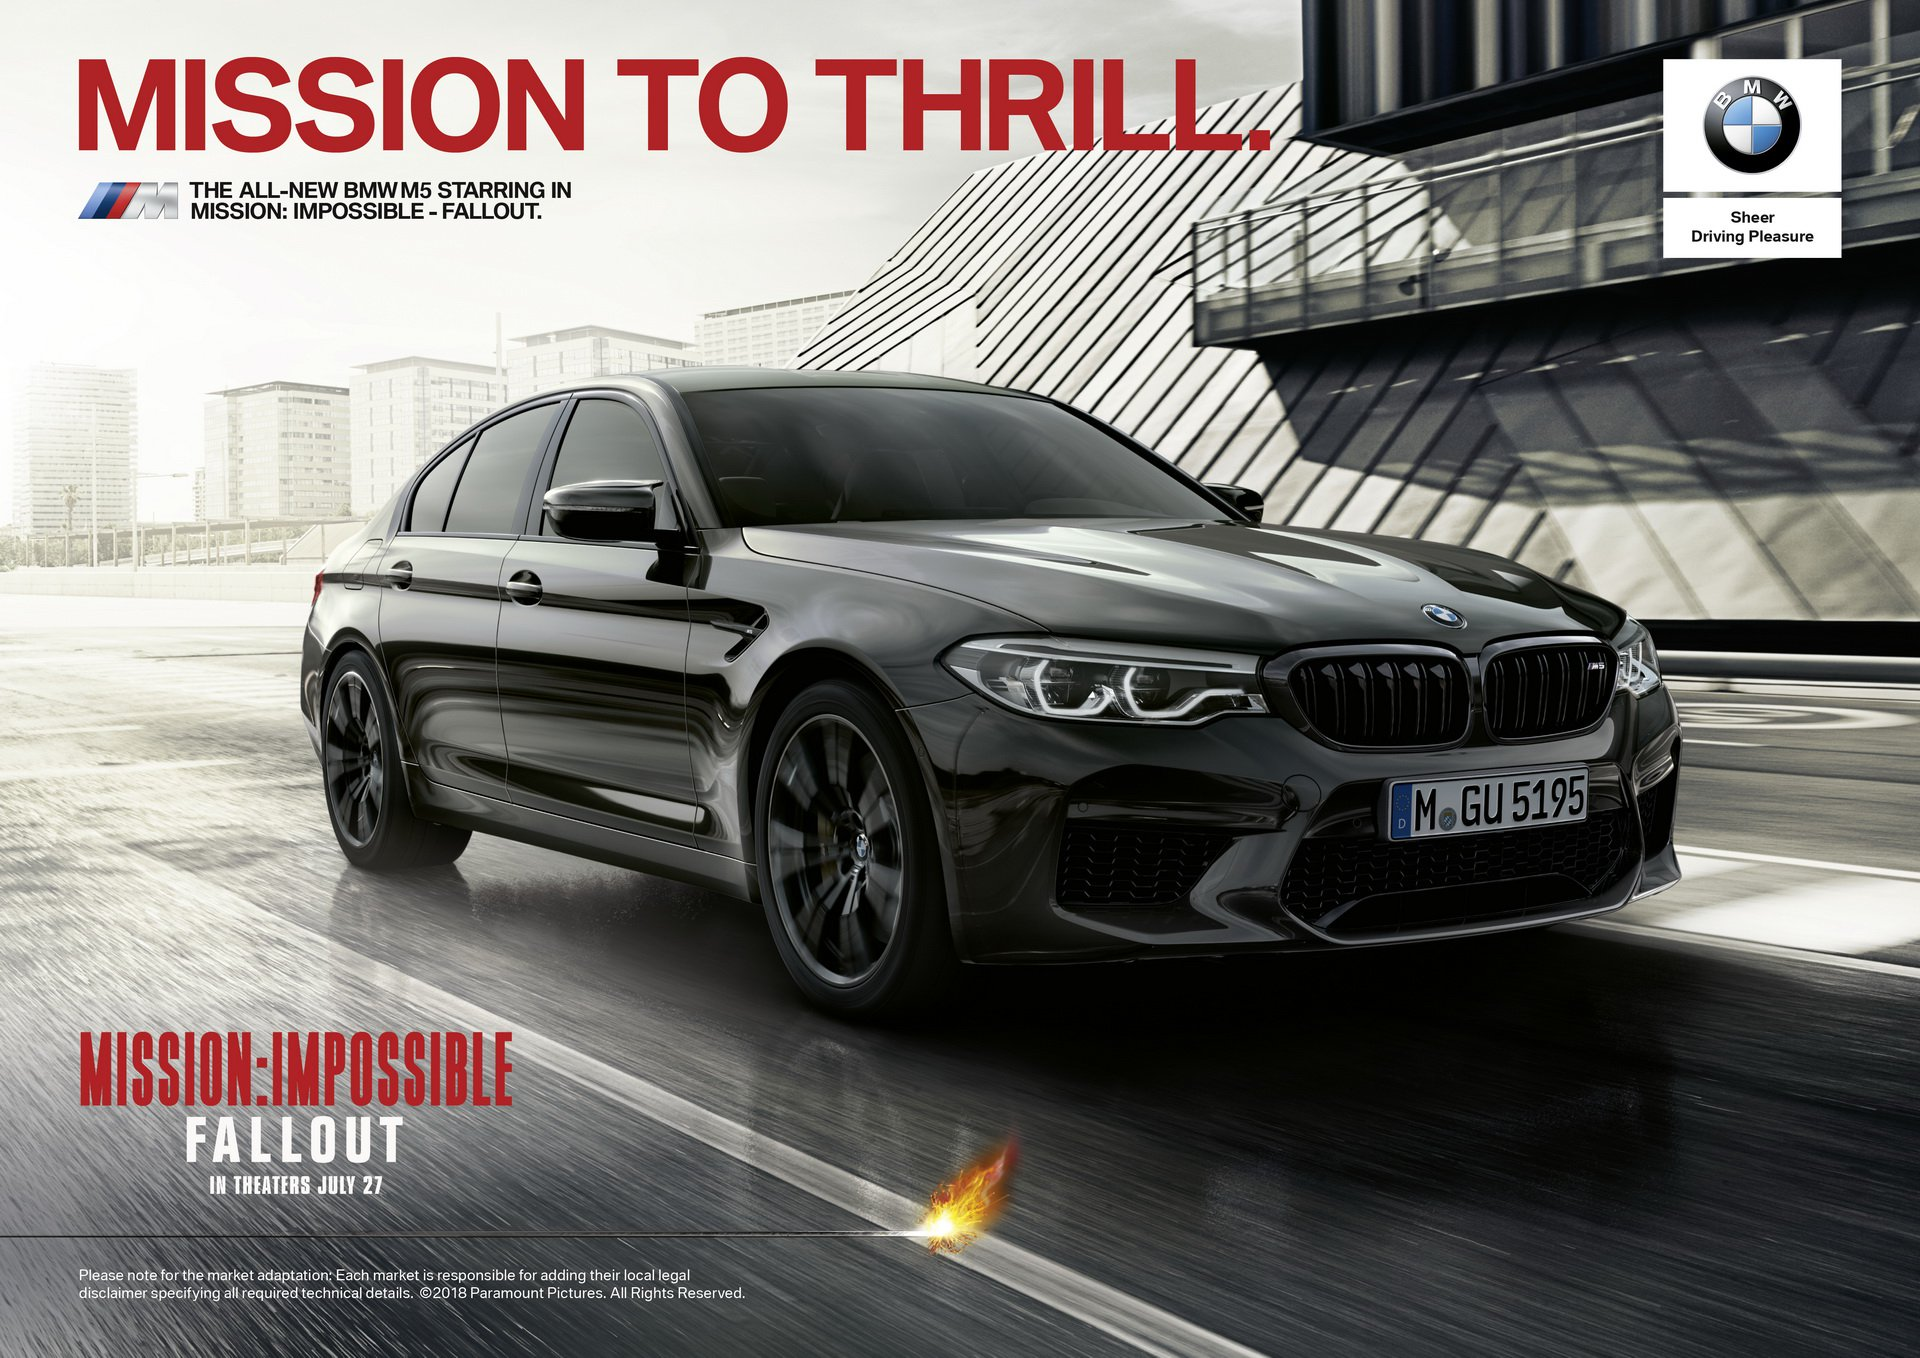 BMW M5 and 5-Series Mission Impossible editions (6)